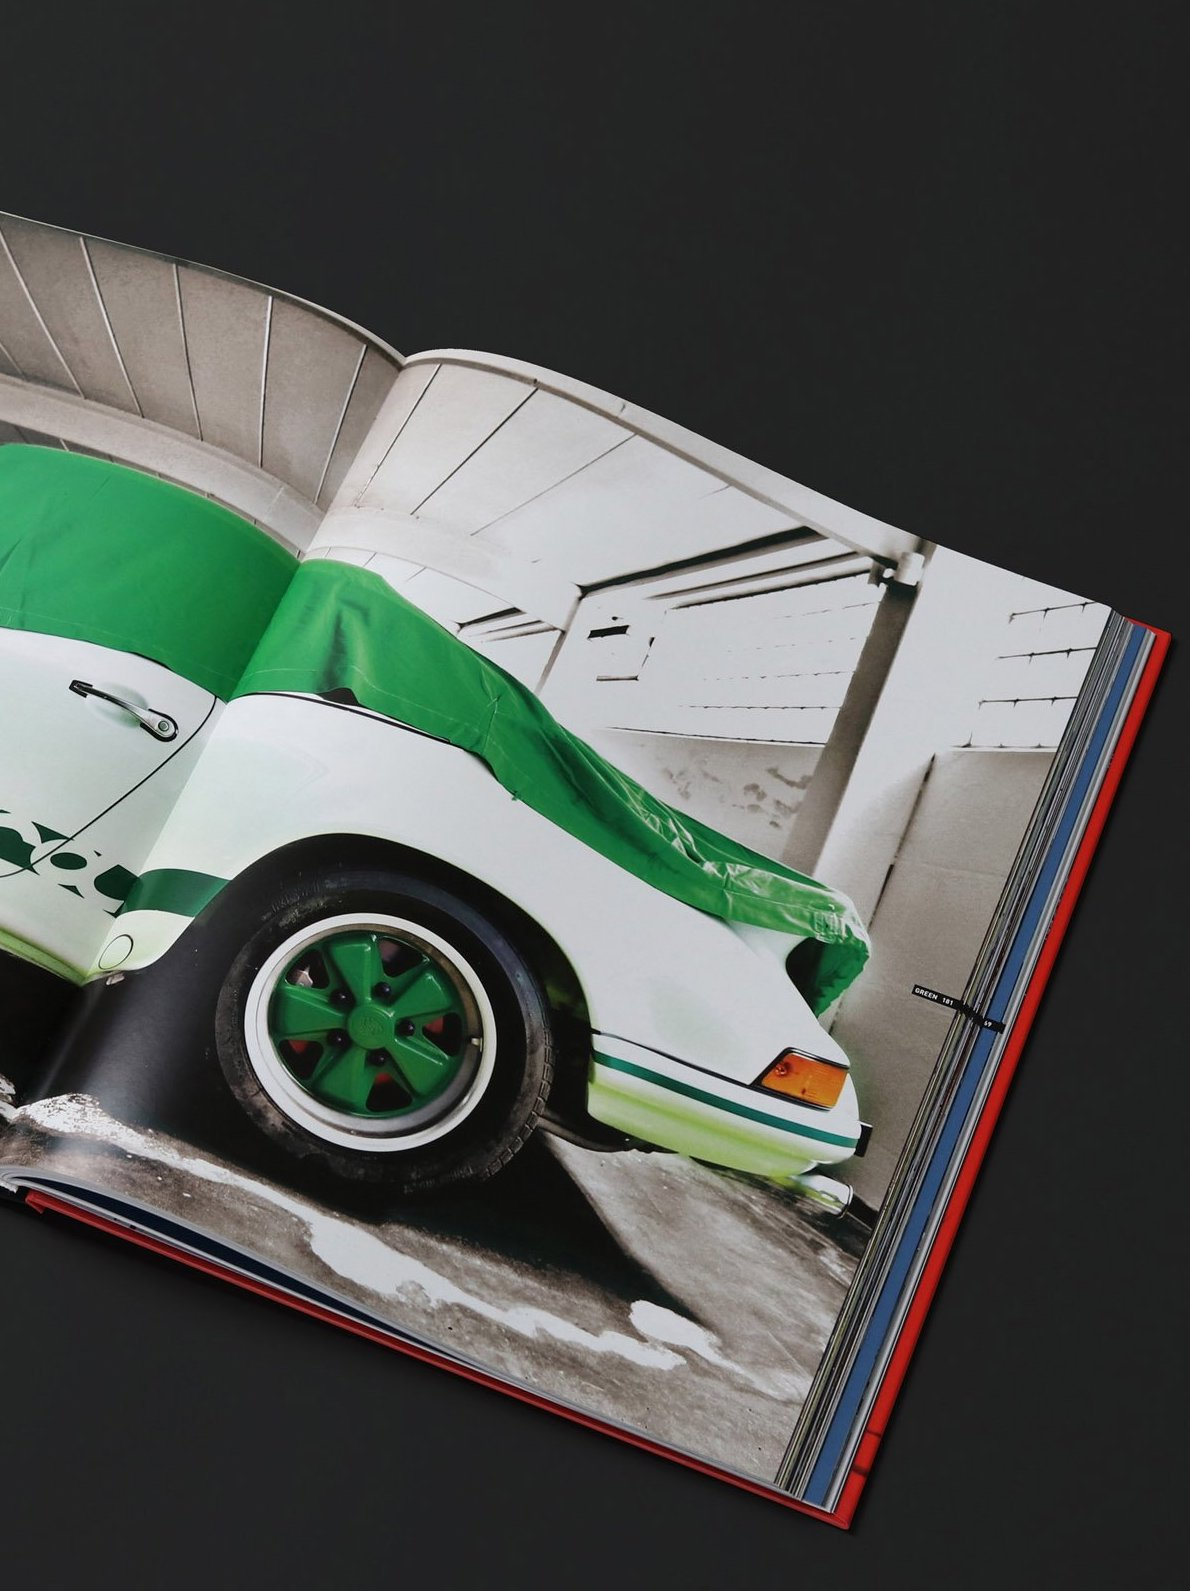 The Porsche Book: The Best Porsche Images By Frank M. Orel